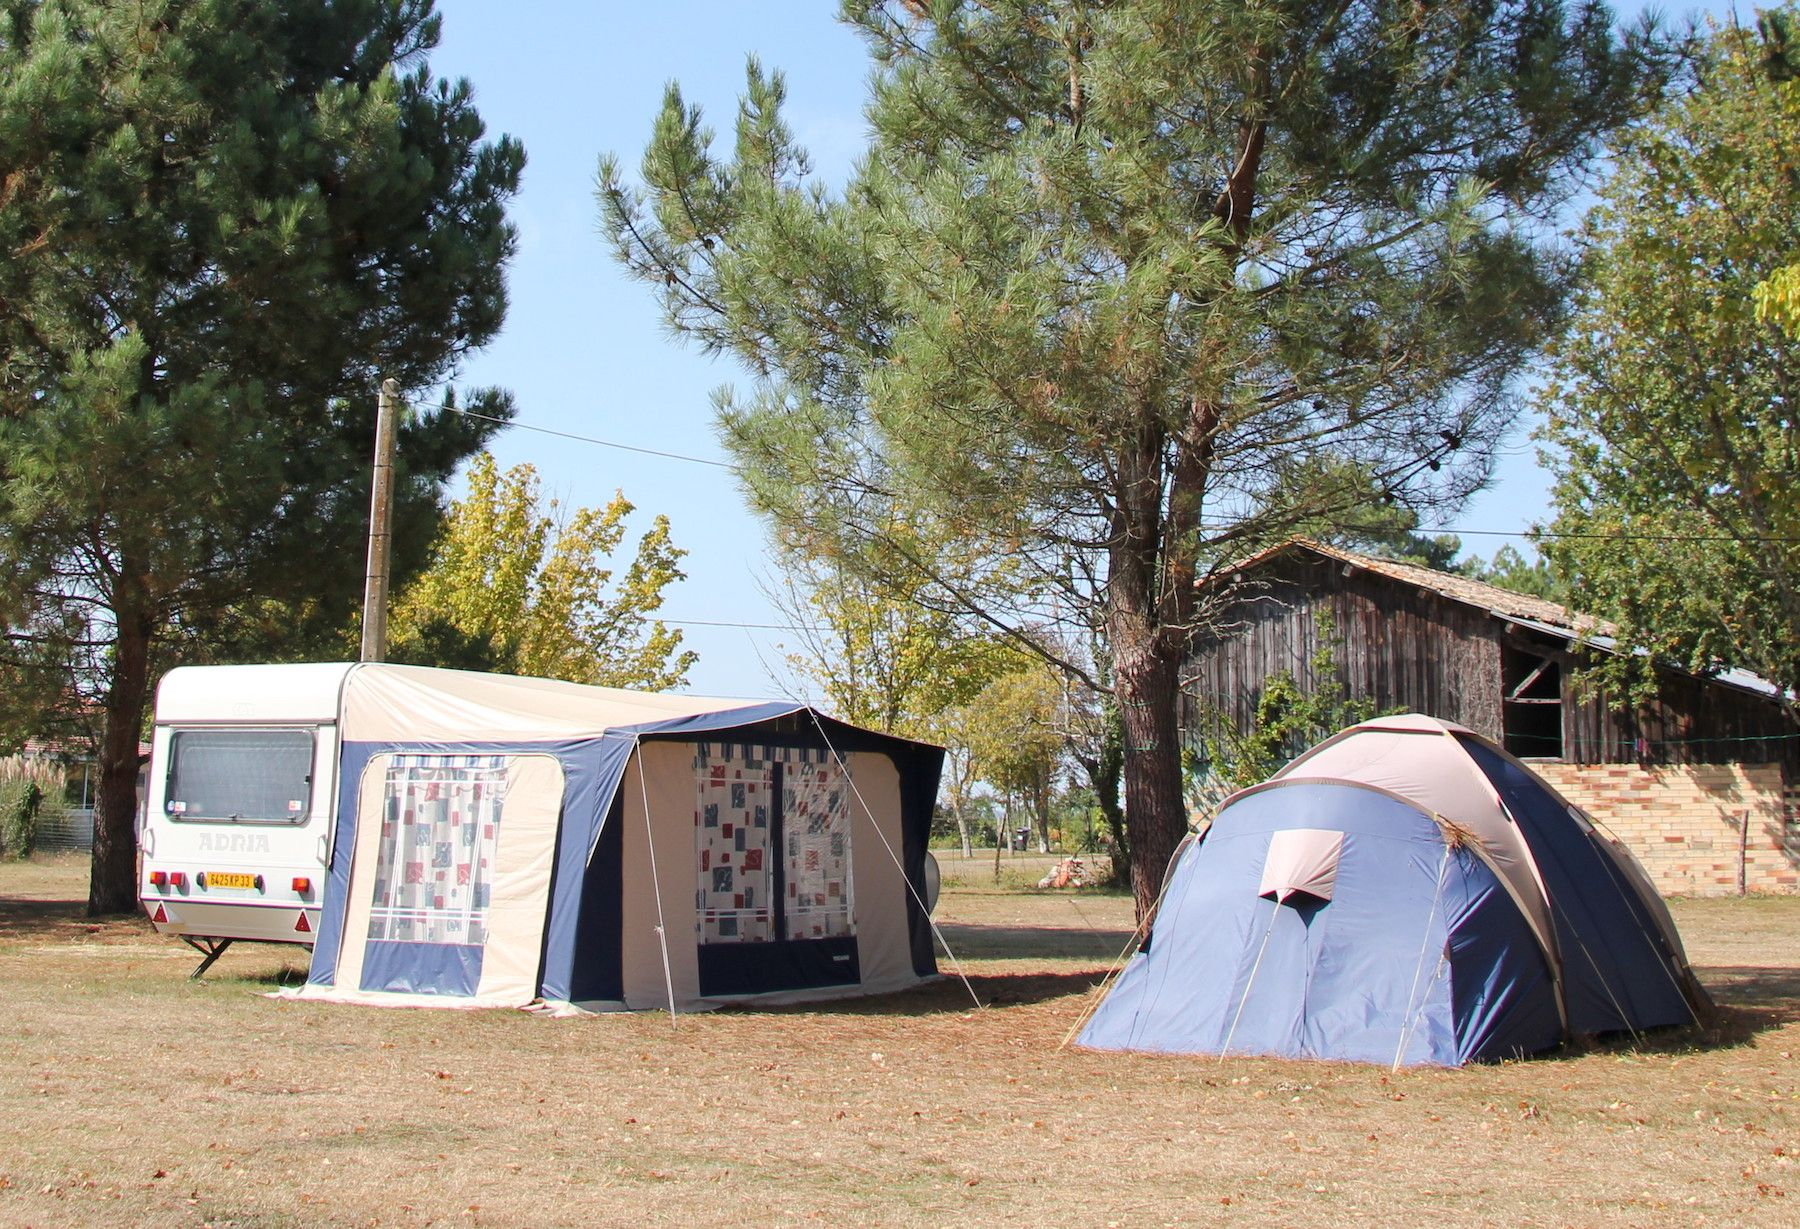 Campsites by the Atlantic Coast – Coastal Camping & Seaside Holidays in West France